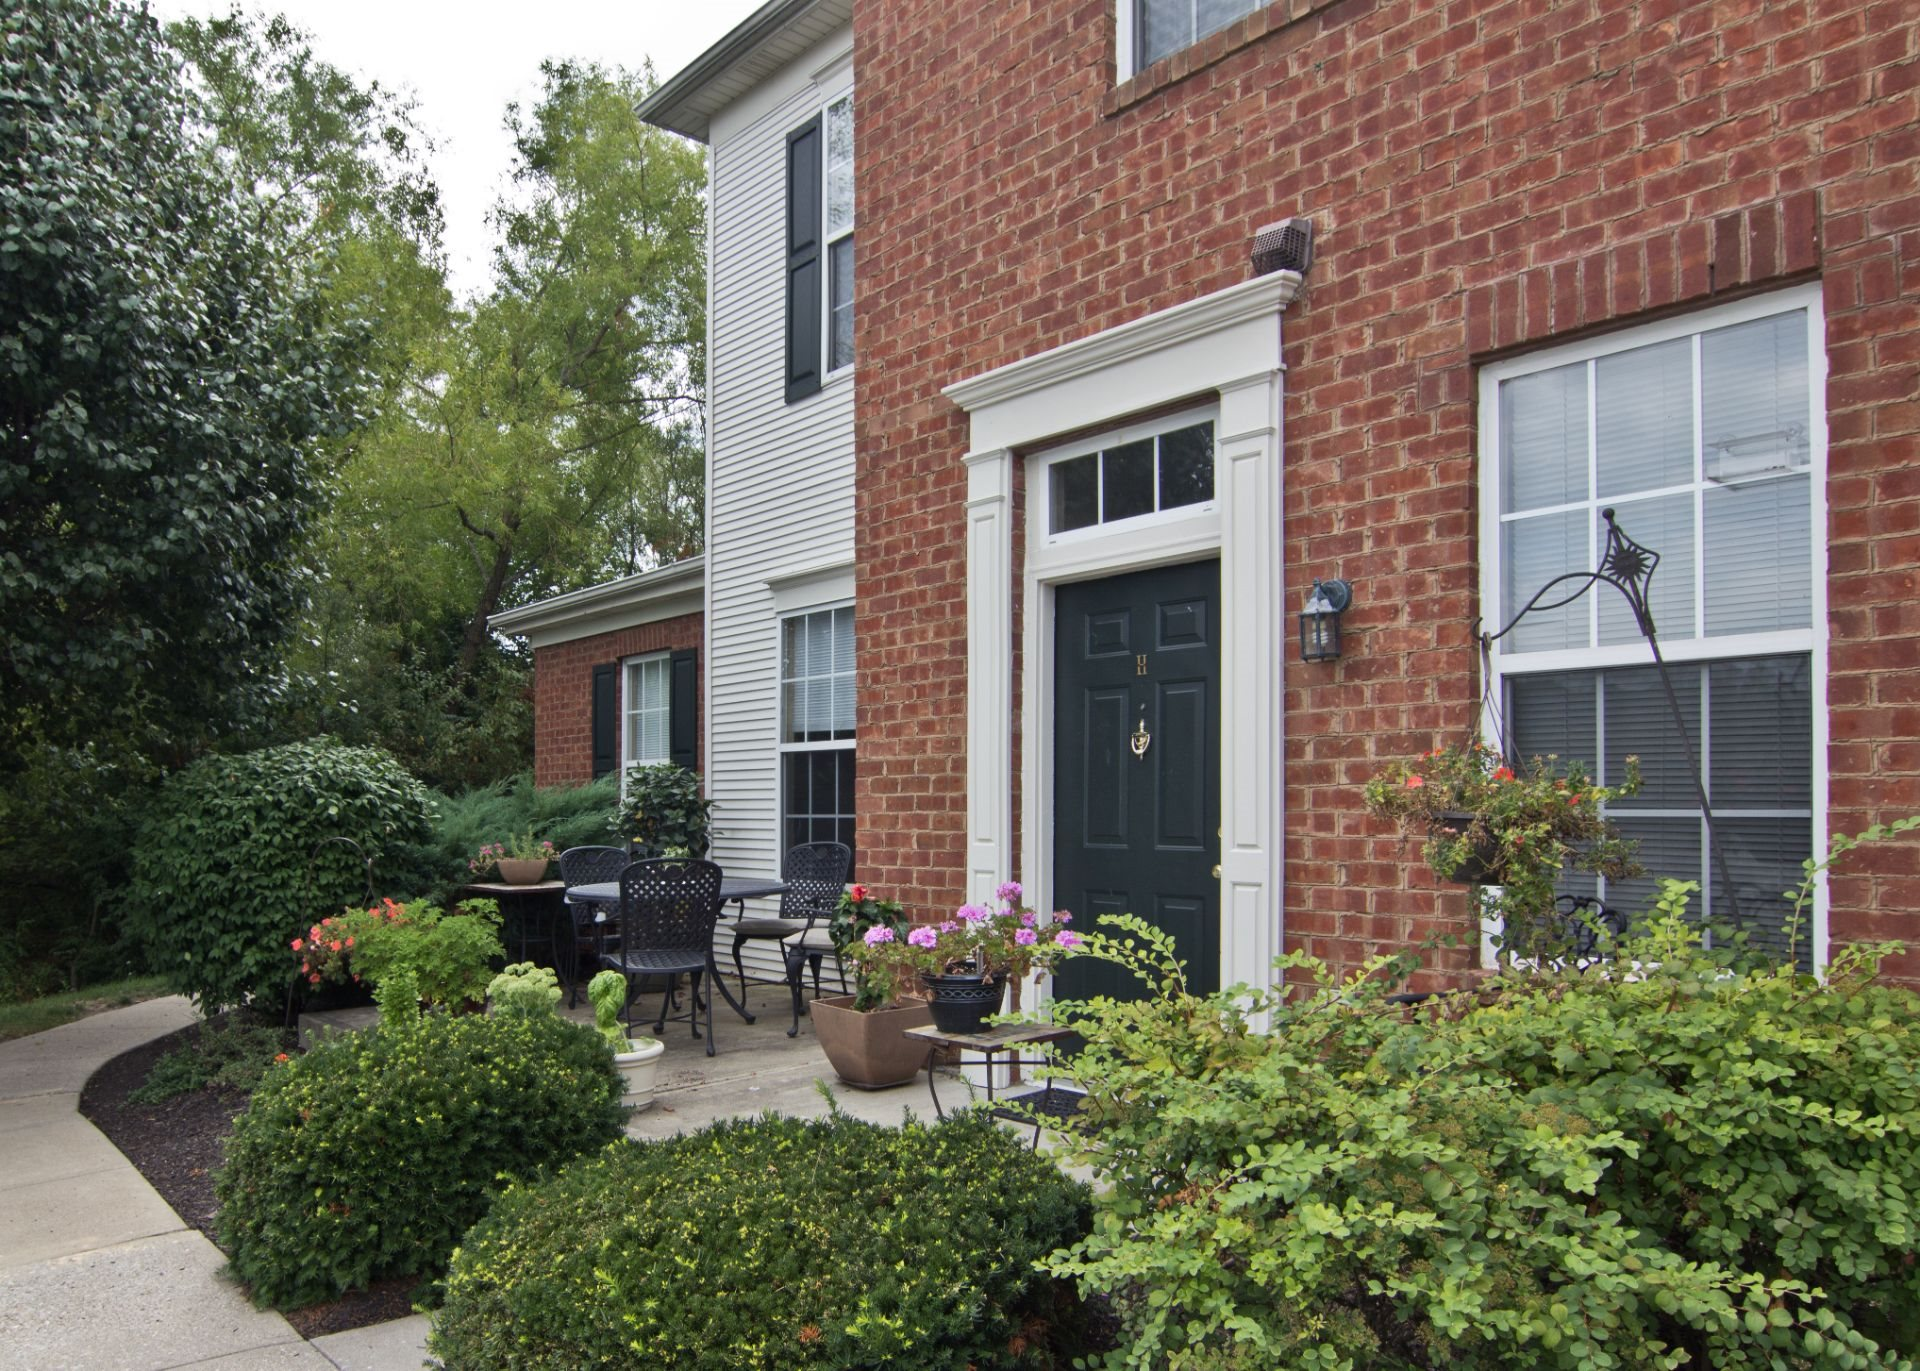 Luxury 1, 2 and 3 Bedroom Apartments and Townhomes in West Chester OH with Chef's Kitchen--The Preserve at Beckett Ridge Apartments and Townhomes-2515 Fox Sedge Way, West Chester OH 45069